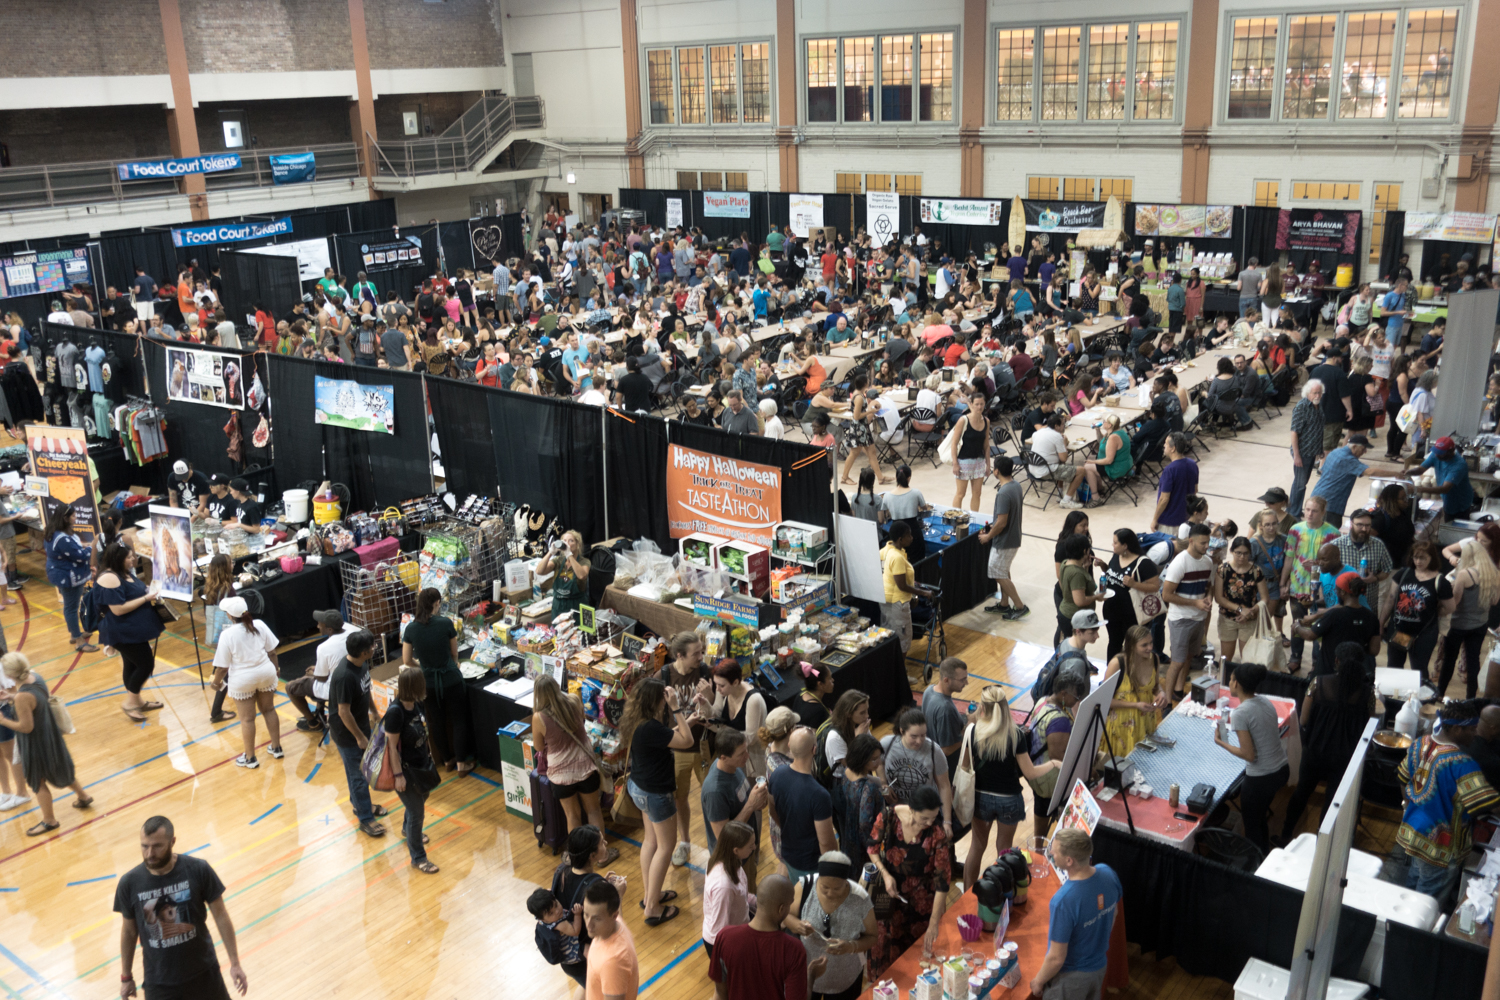 Chicago VeganMania: A Vegan Wonderland of Food. Lots of amazing vegan food, chefs, and exhibitors.